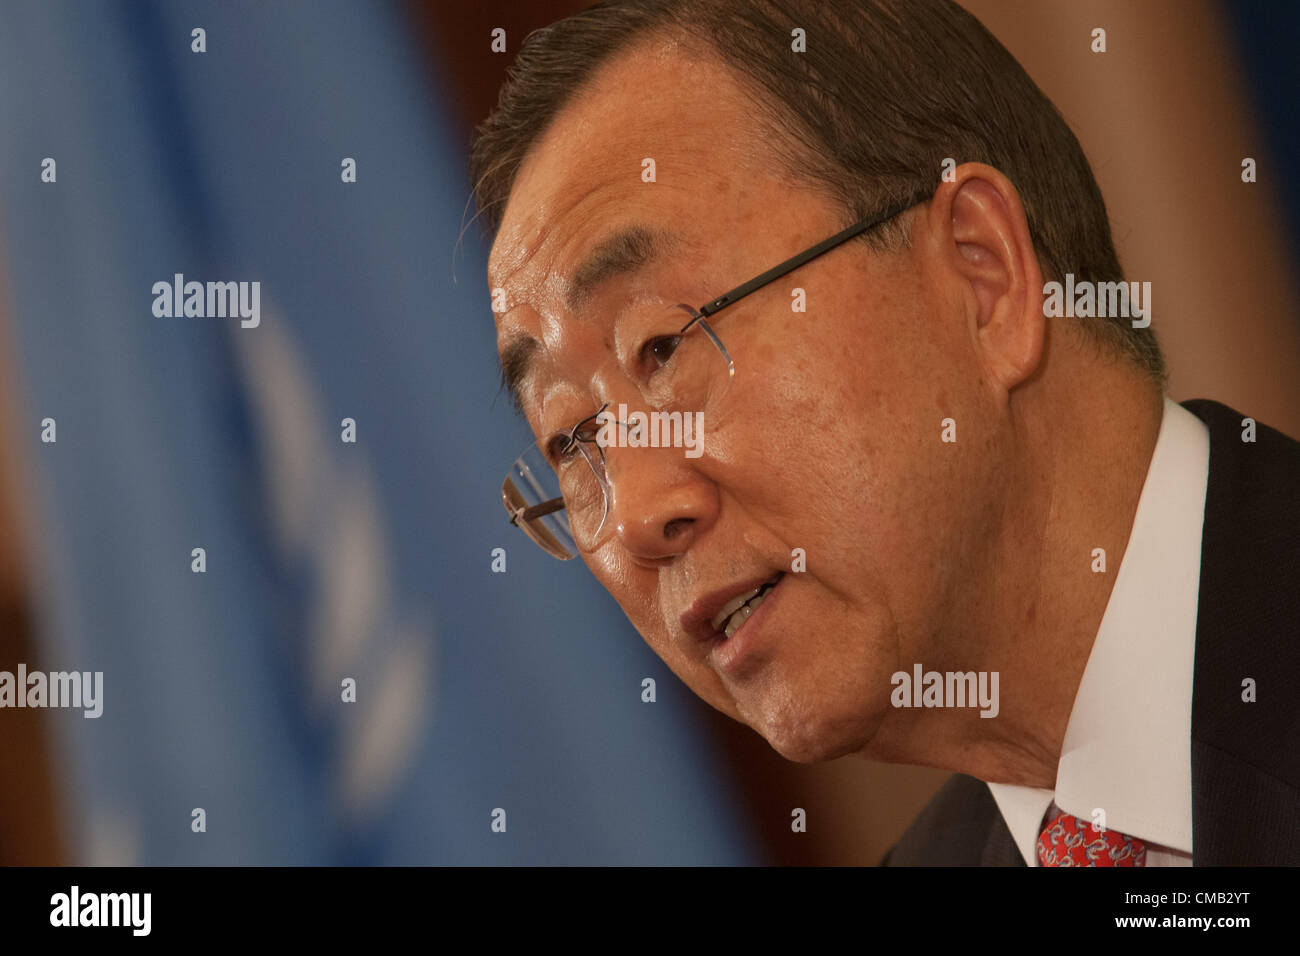 Ban Ki-moon, 8th Secretary-General  of the United Nations, at a press conference after summit on Afghanistan, in Stock Photo